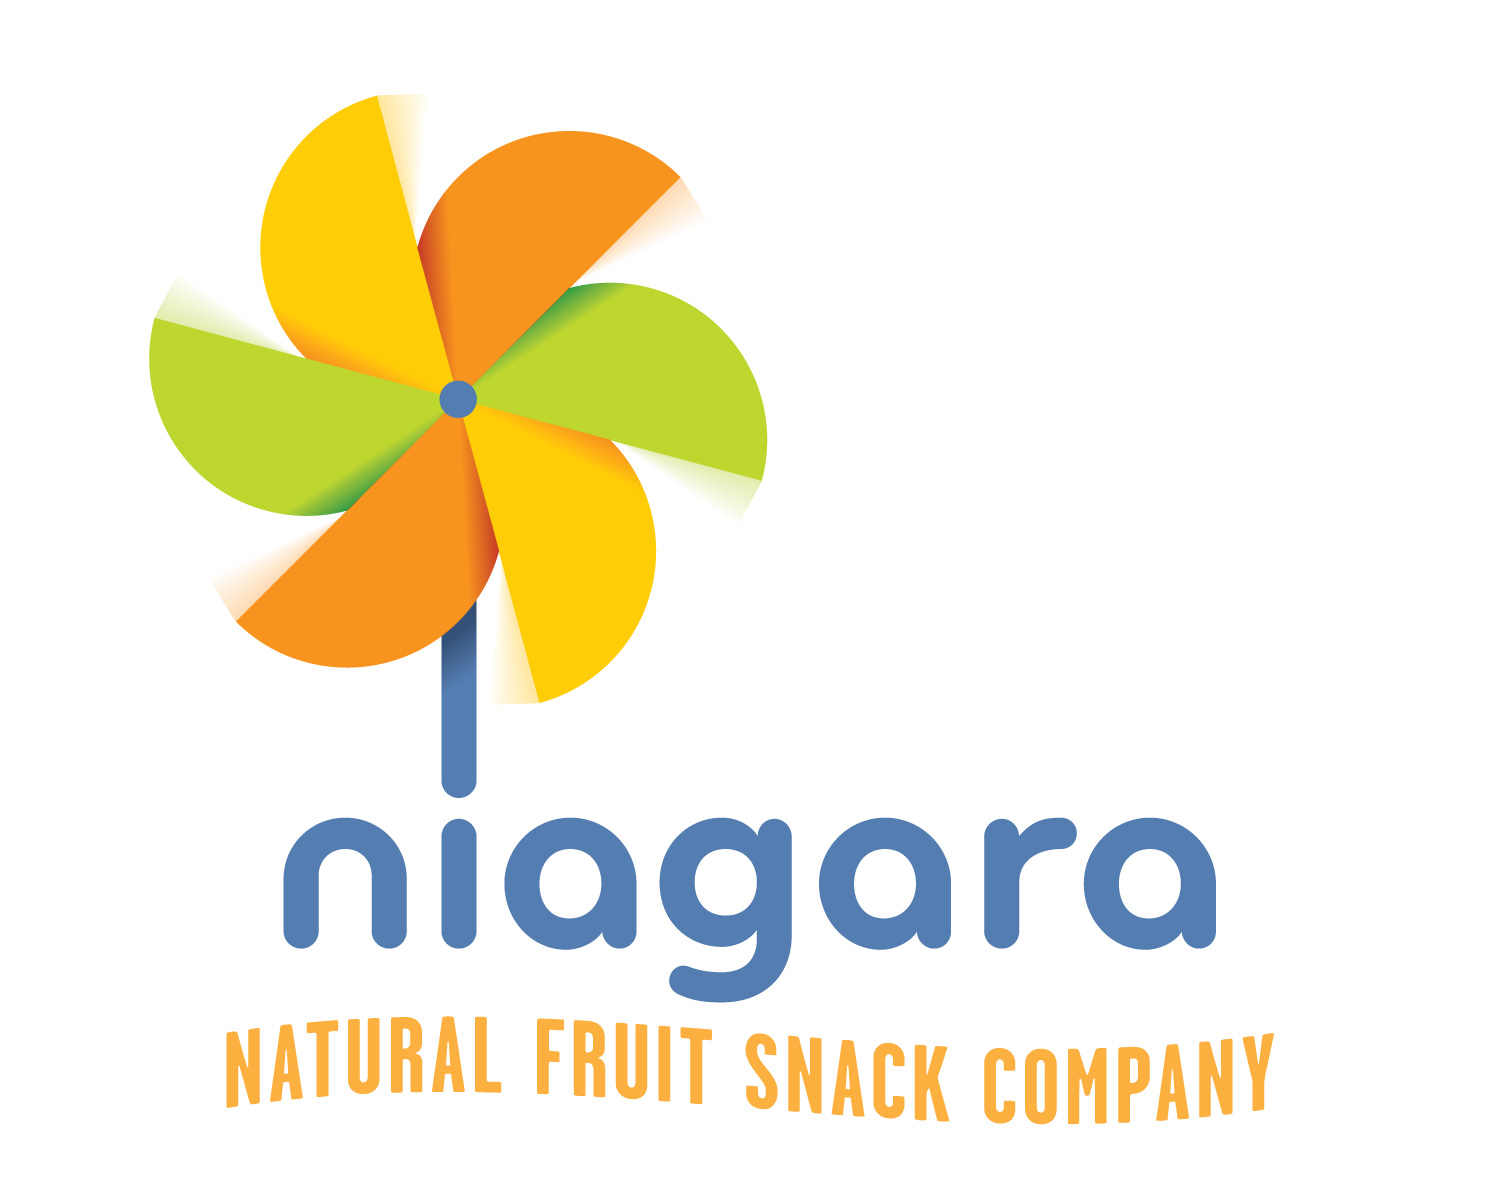 Niagara Natural Fruit Snack Co. at FOUR MILE CREEK ROAD ST. DAVIDS, ON L0S 1P0. Find their customers, contact information, and details on 8 shipments.